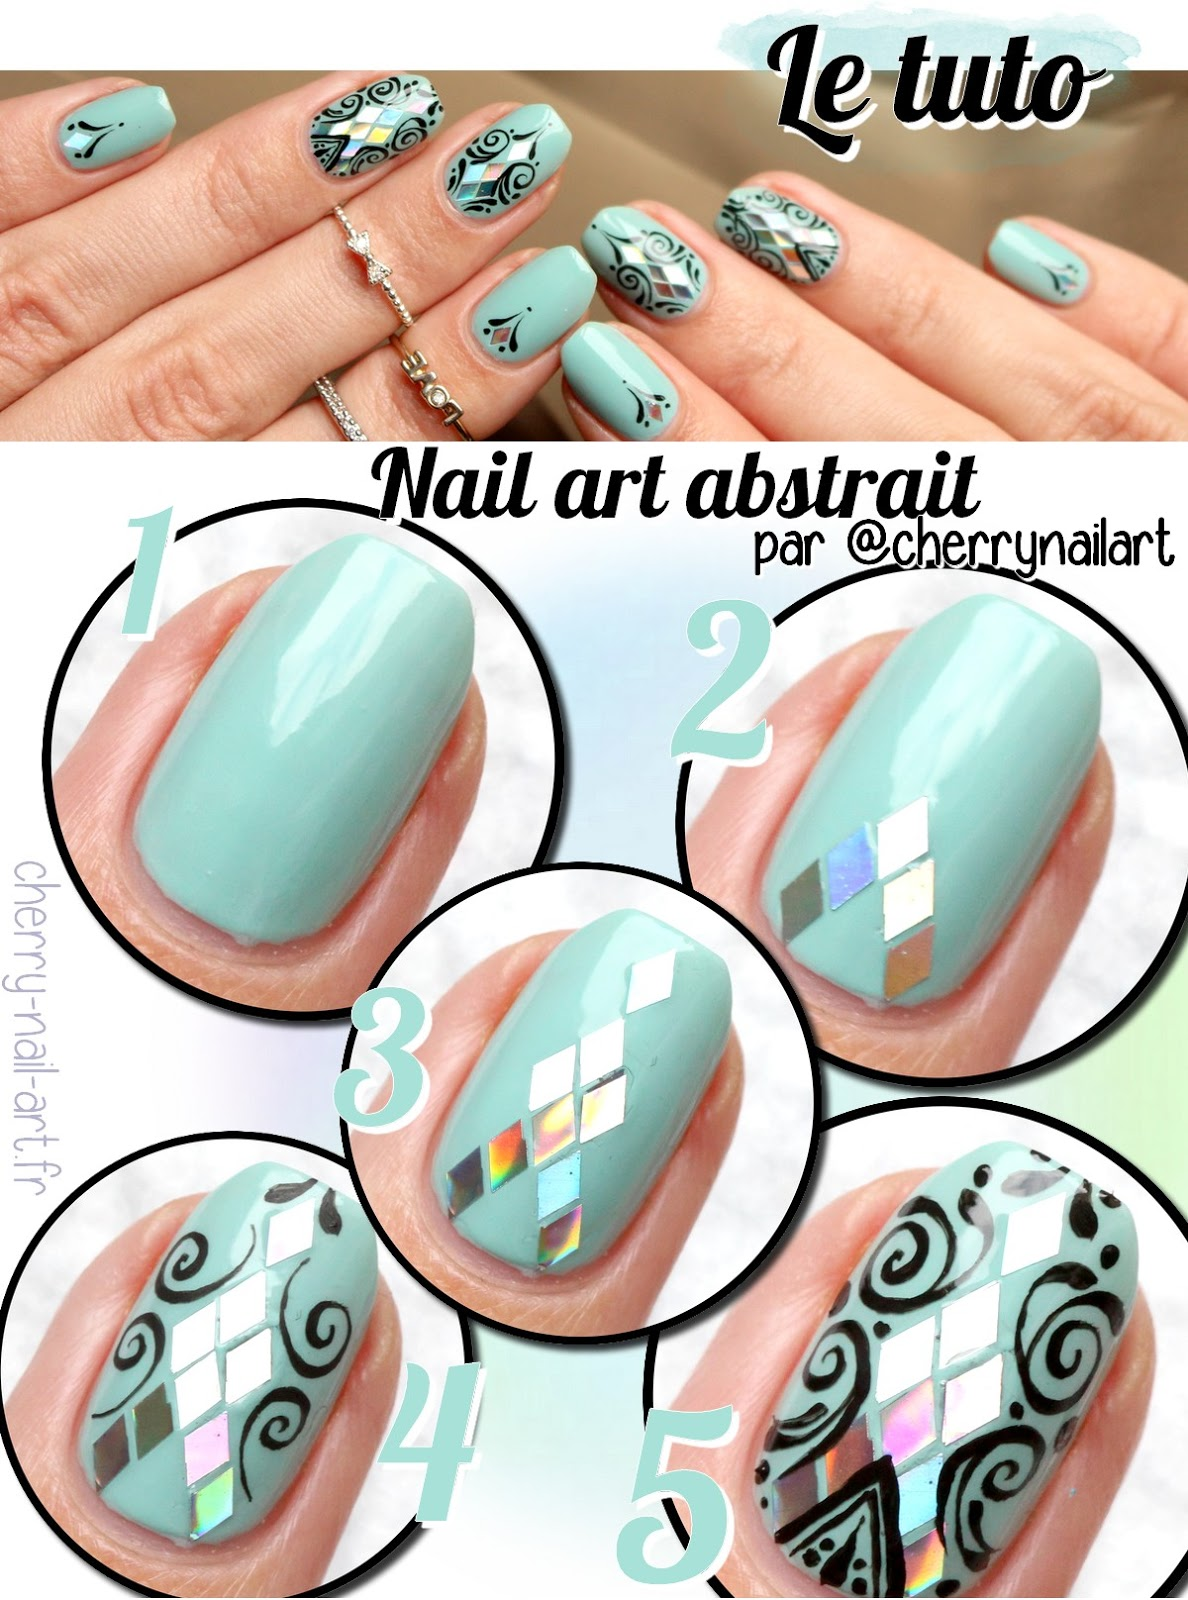 tuto-nail-art-paillettes-losanges-arabesques-abstrait-tanya-burr